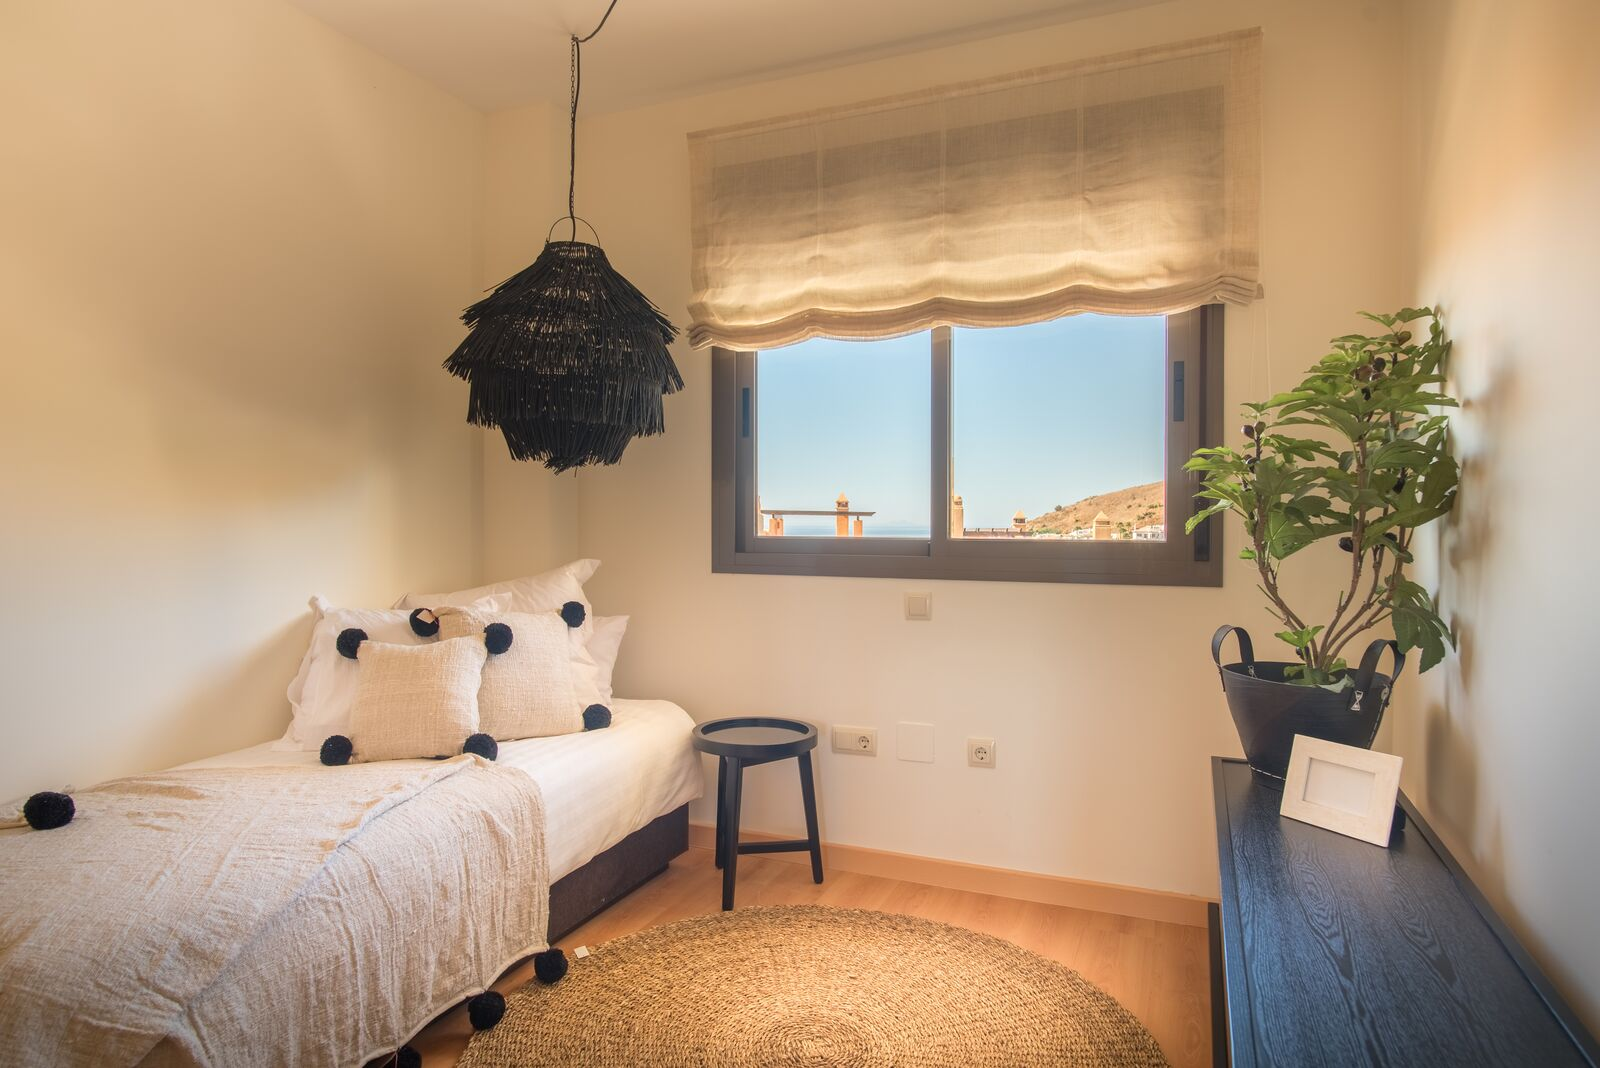 La-Cala-Suites-Homely-Interior-2